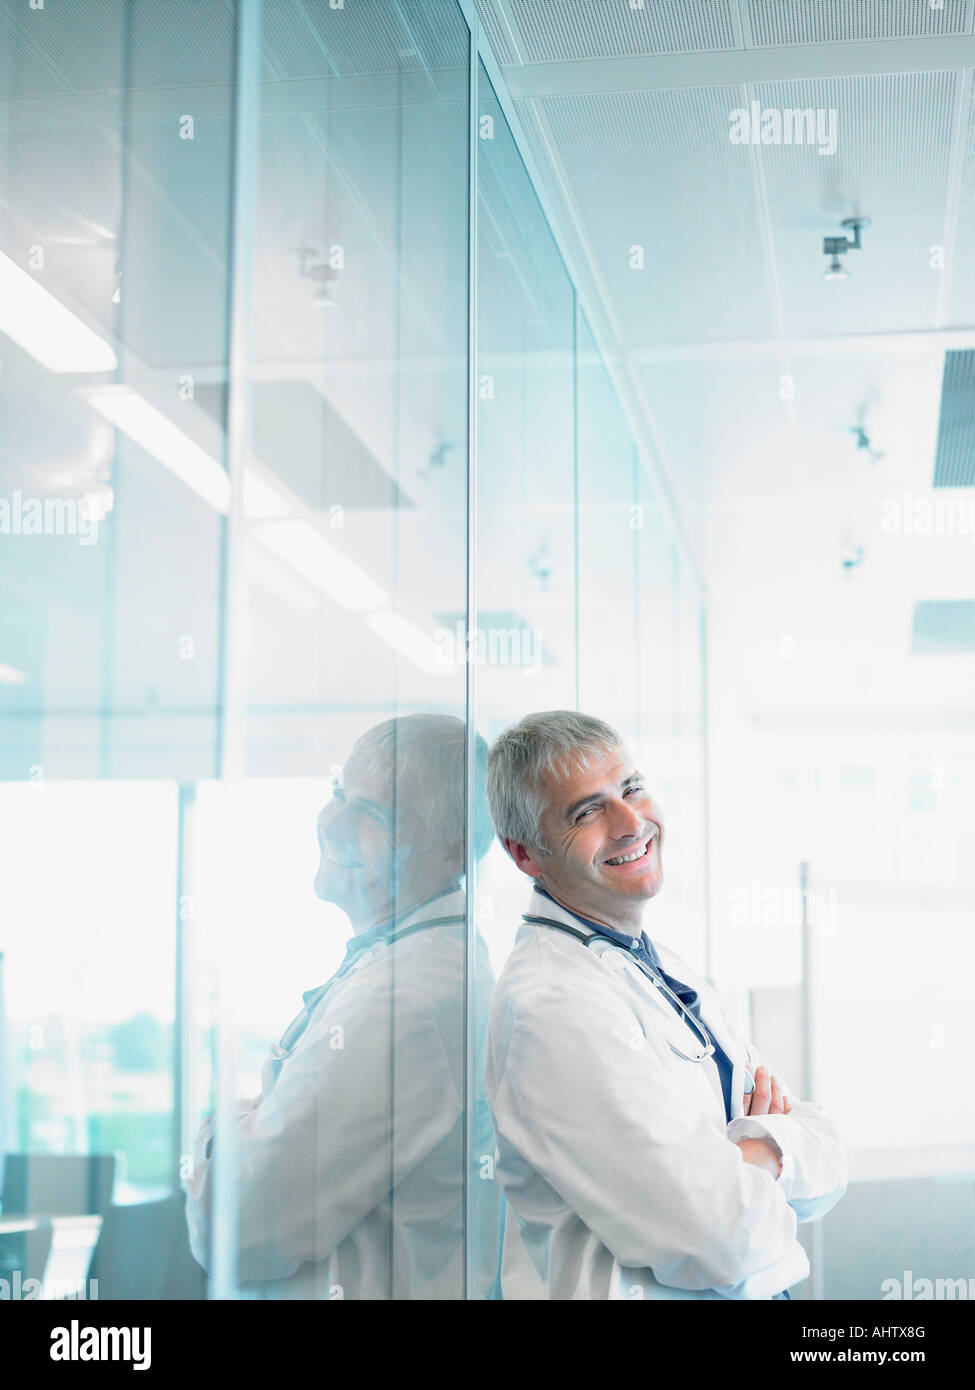 Smiling male doctor leaning on glass wall in hospital lobby. - Stock Image